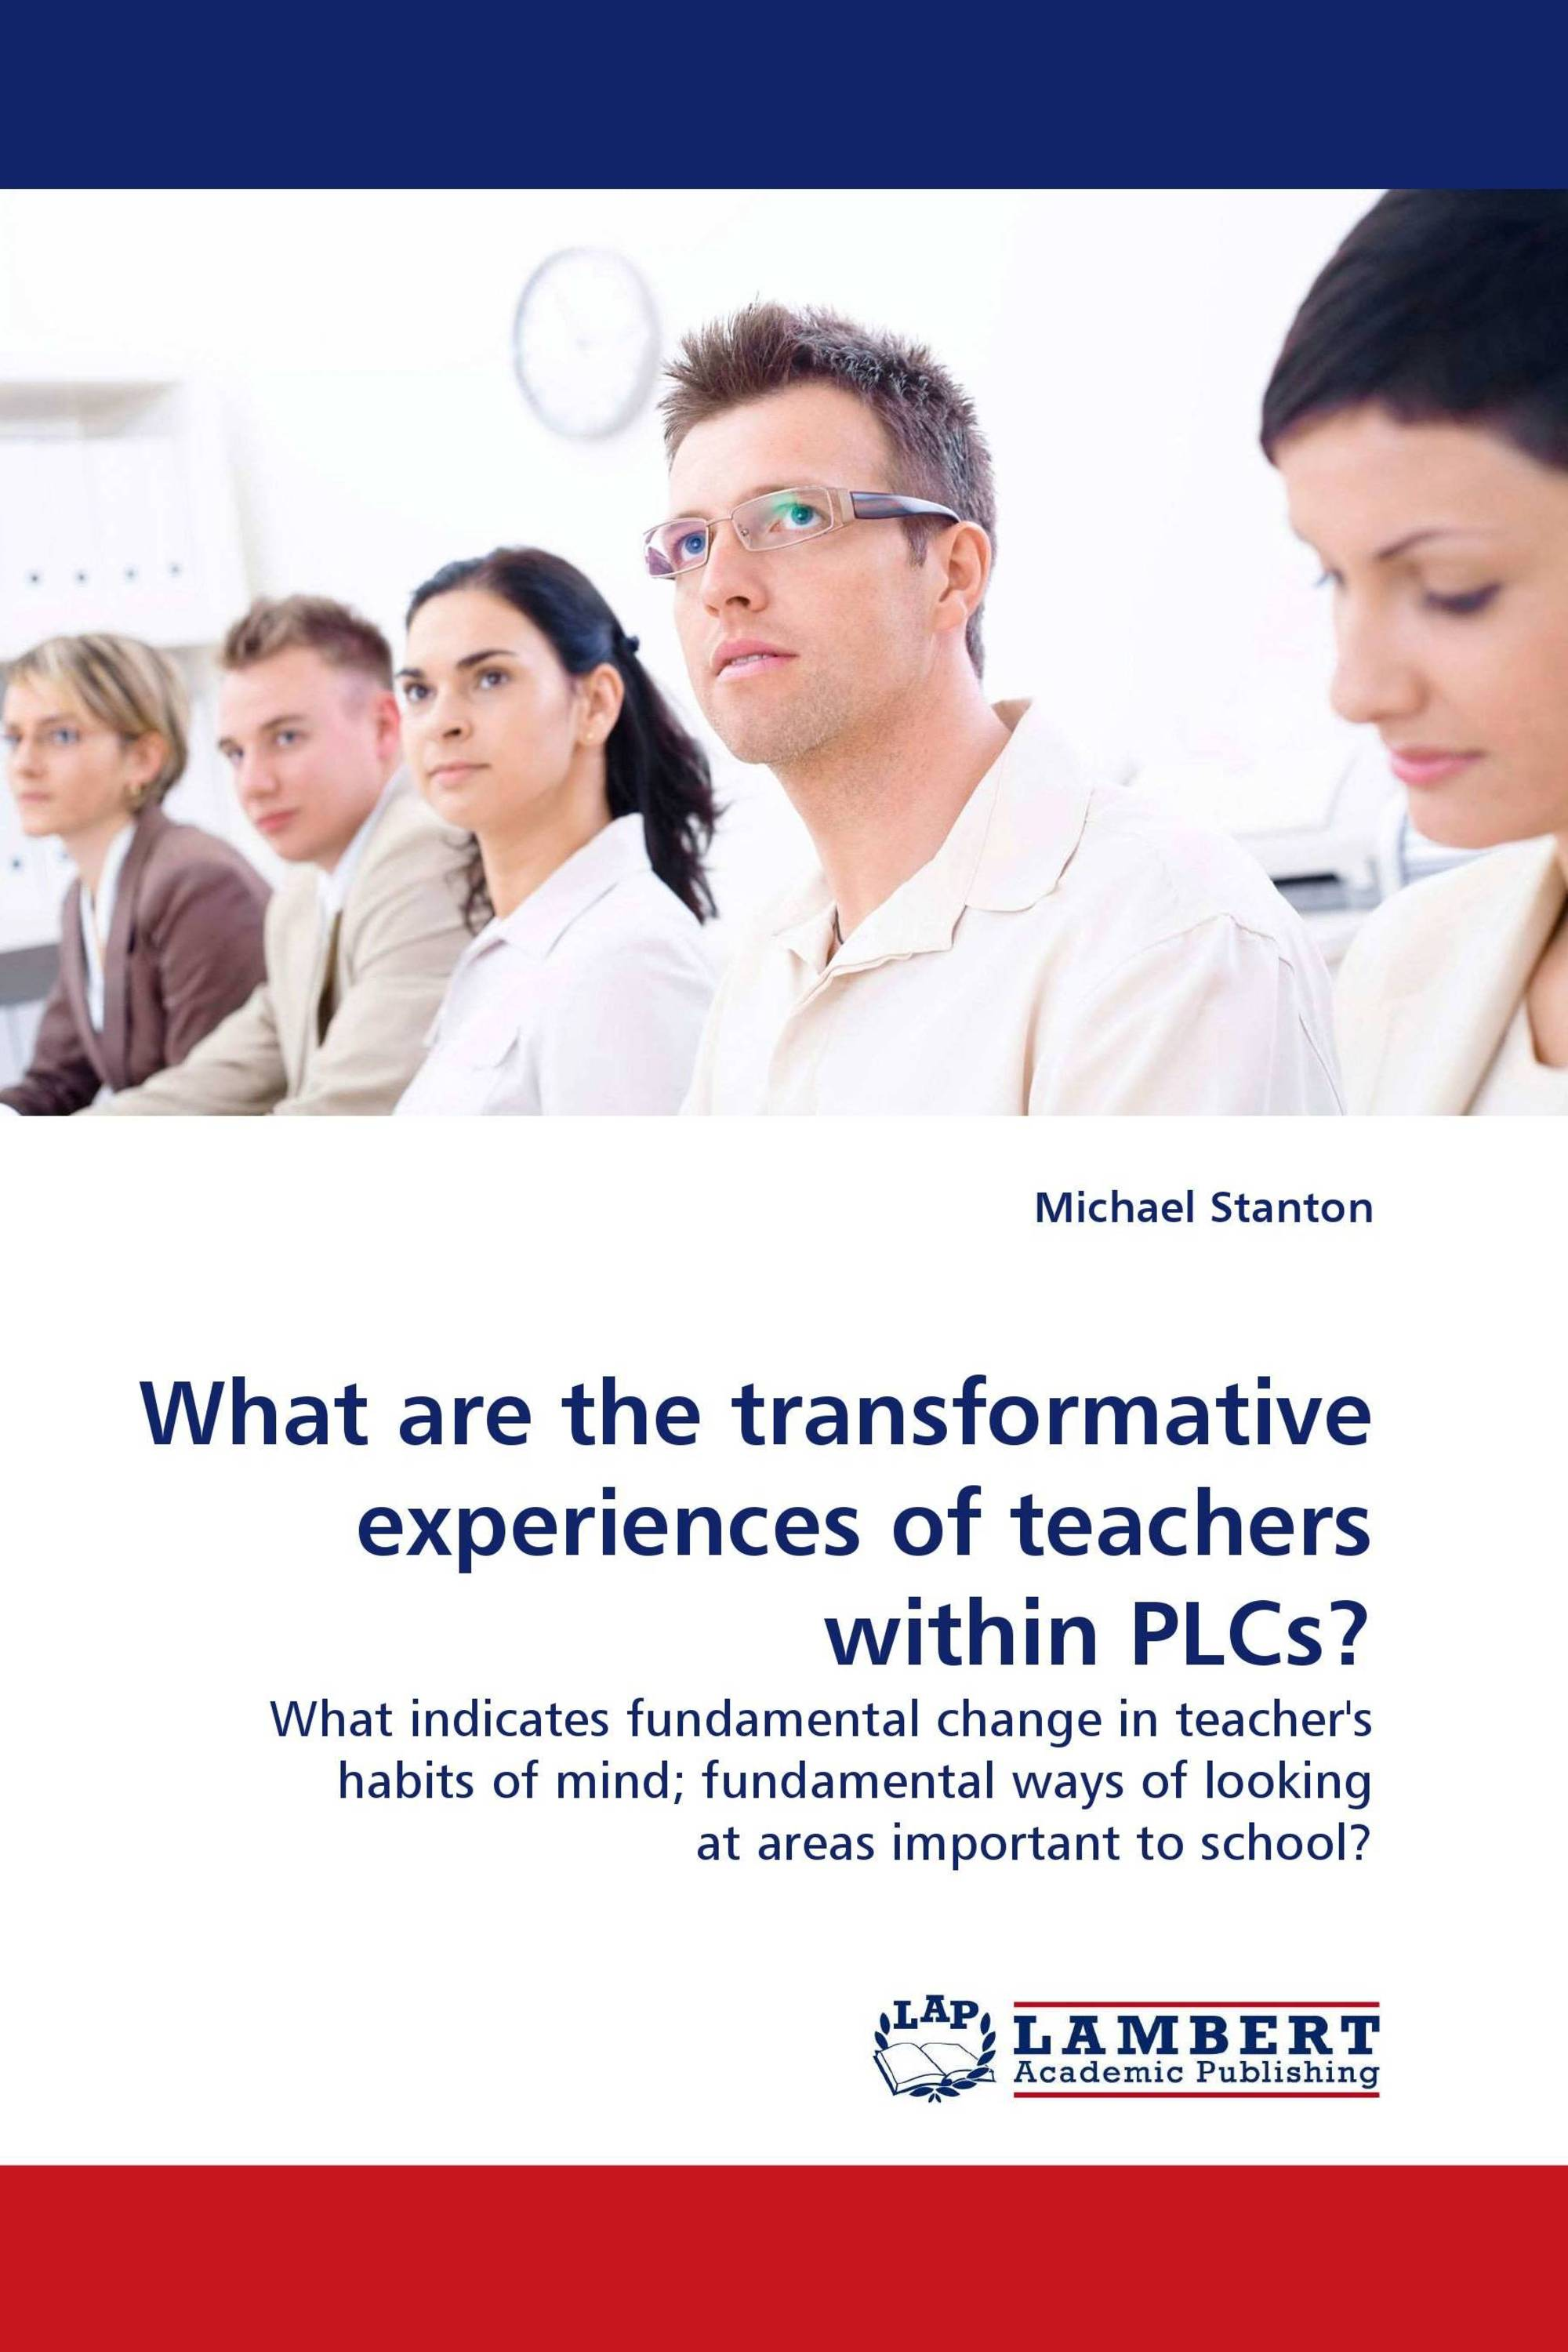 What are the transformative experiences of teachers within PLCs?